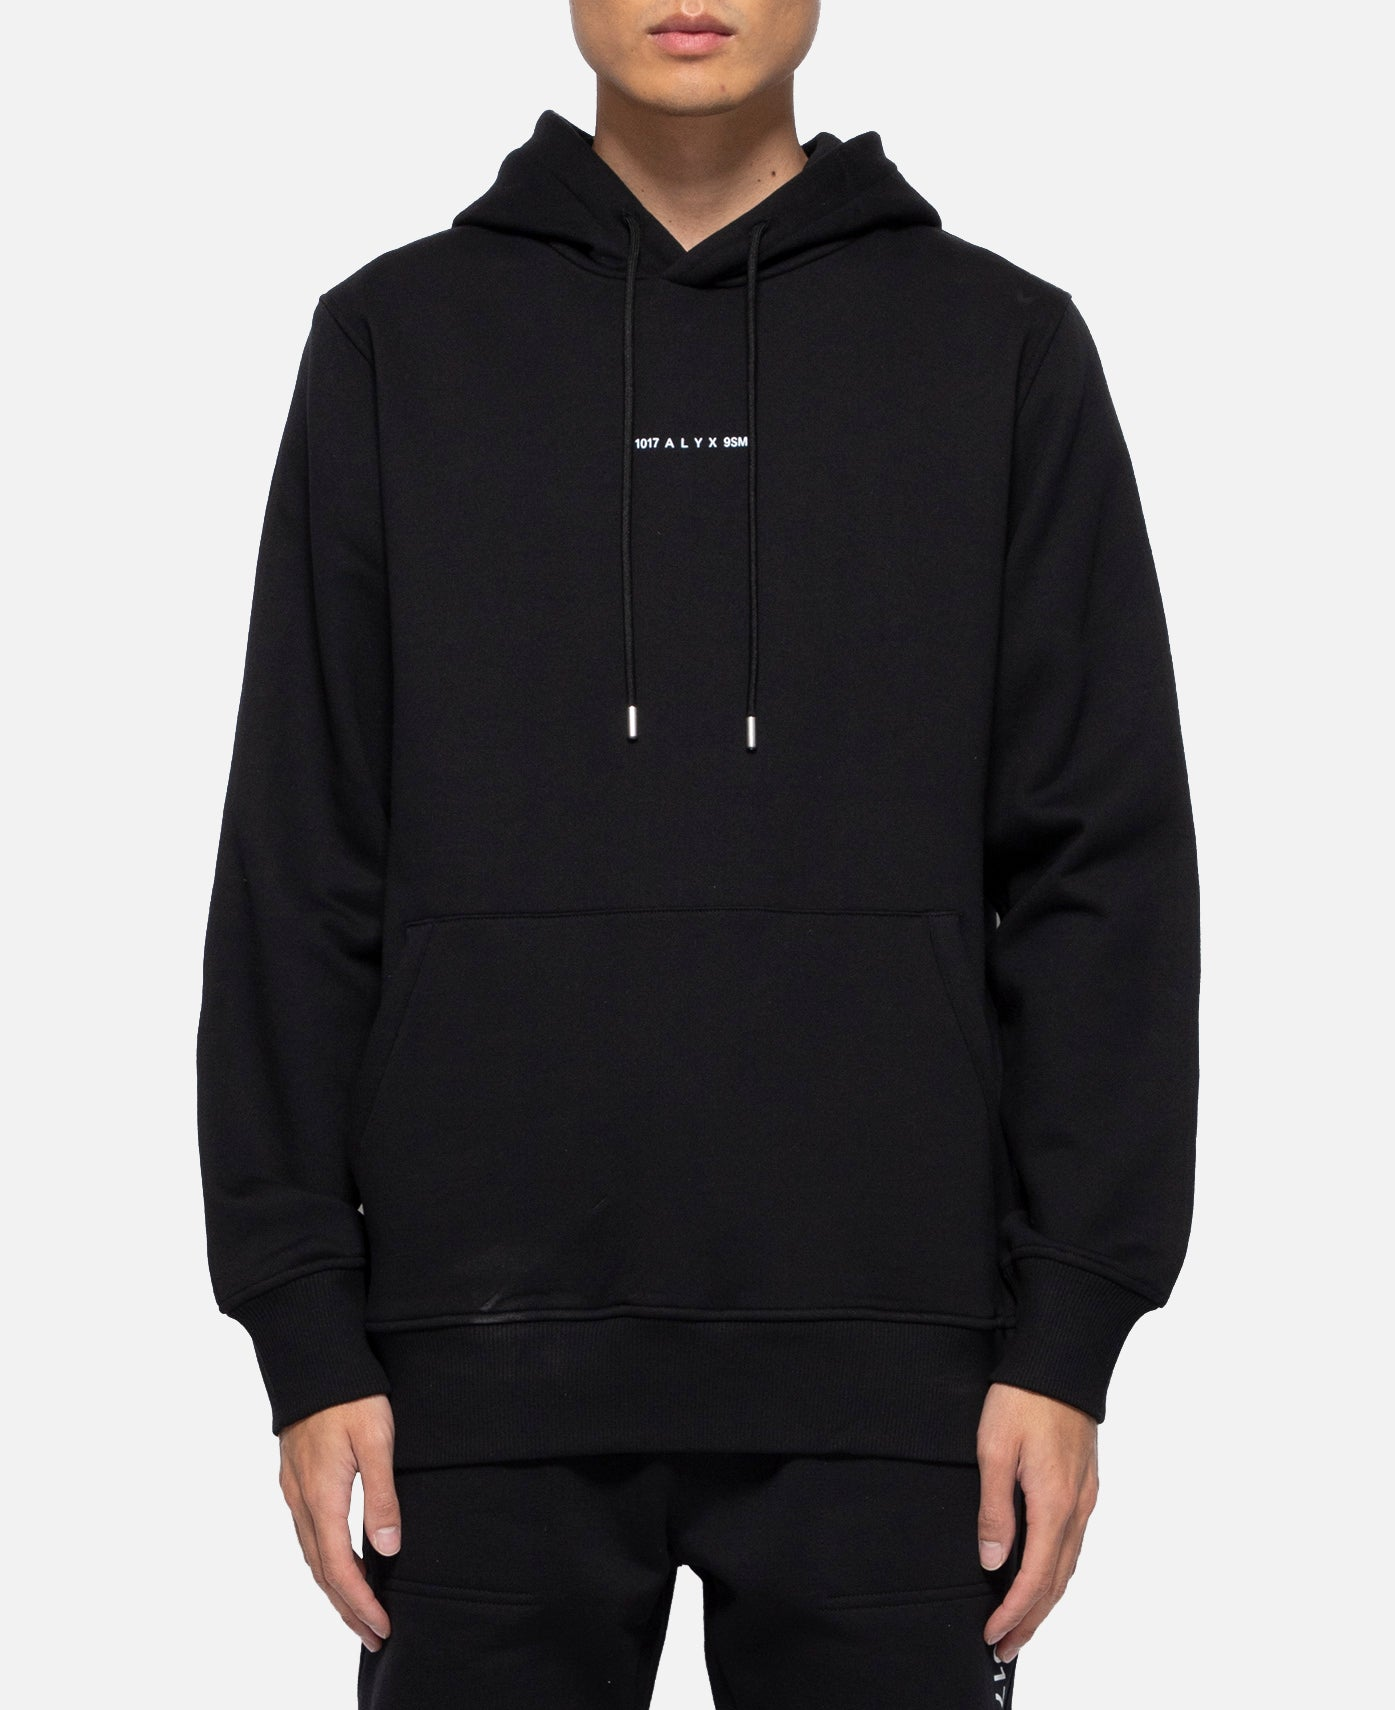 Hooded Sweatshirt Visual (Black)